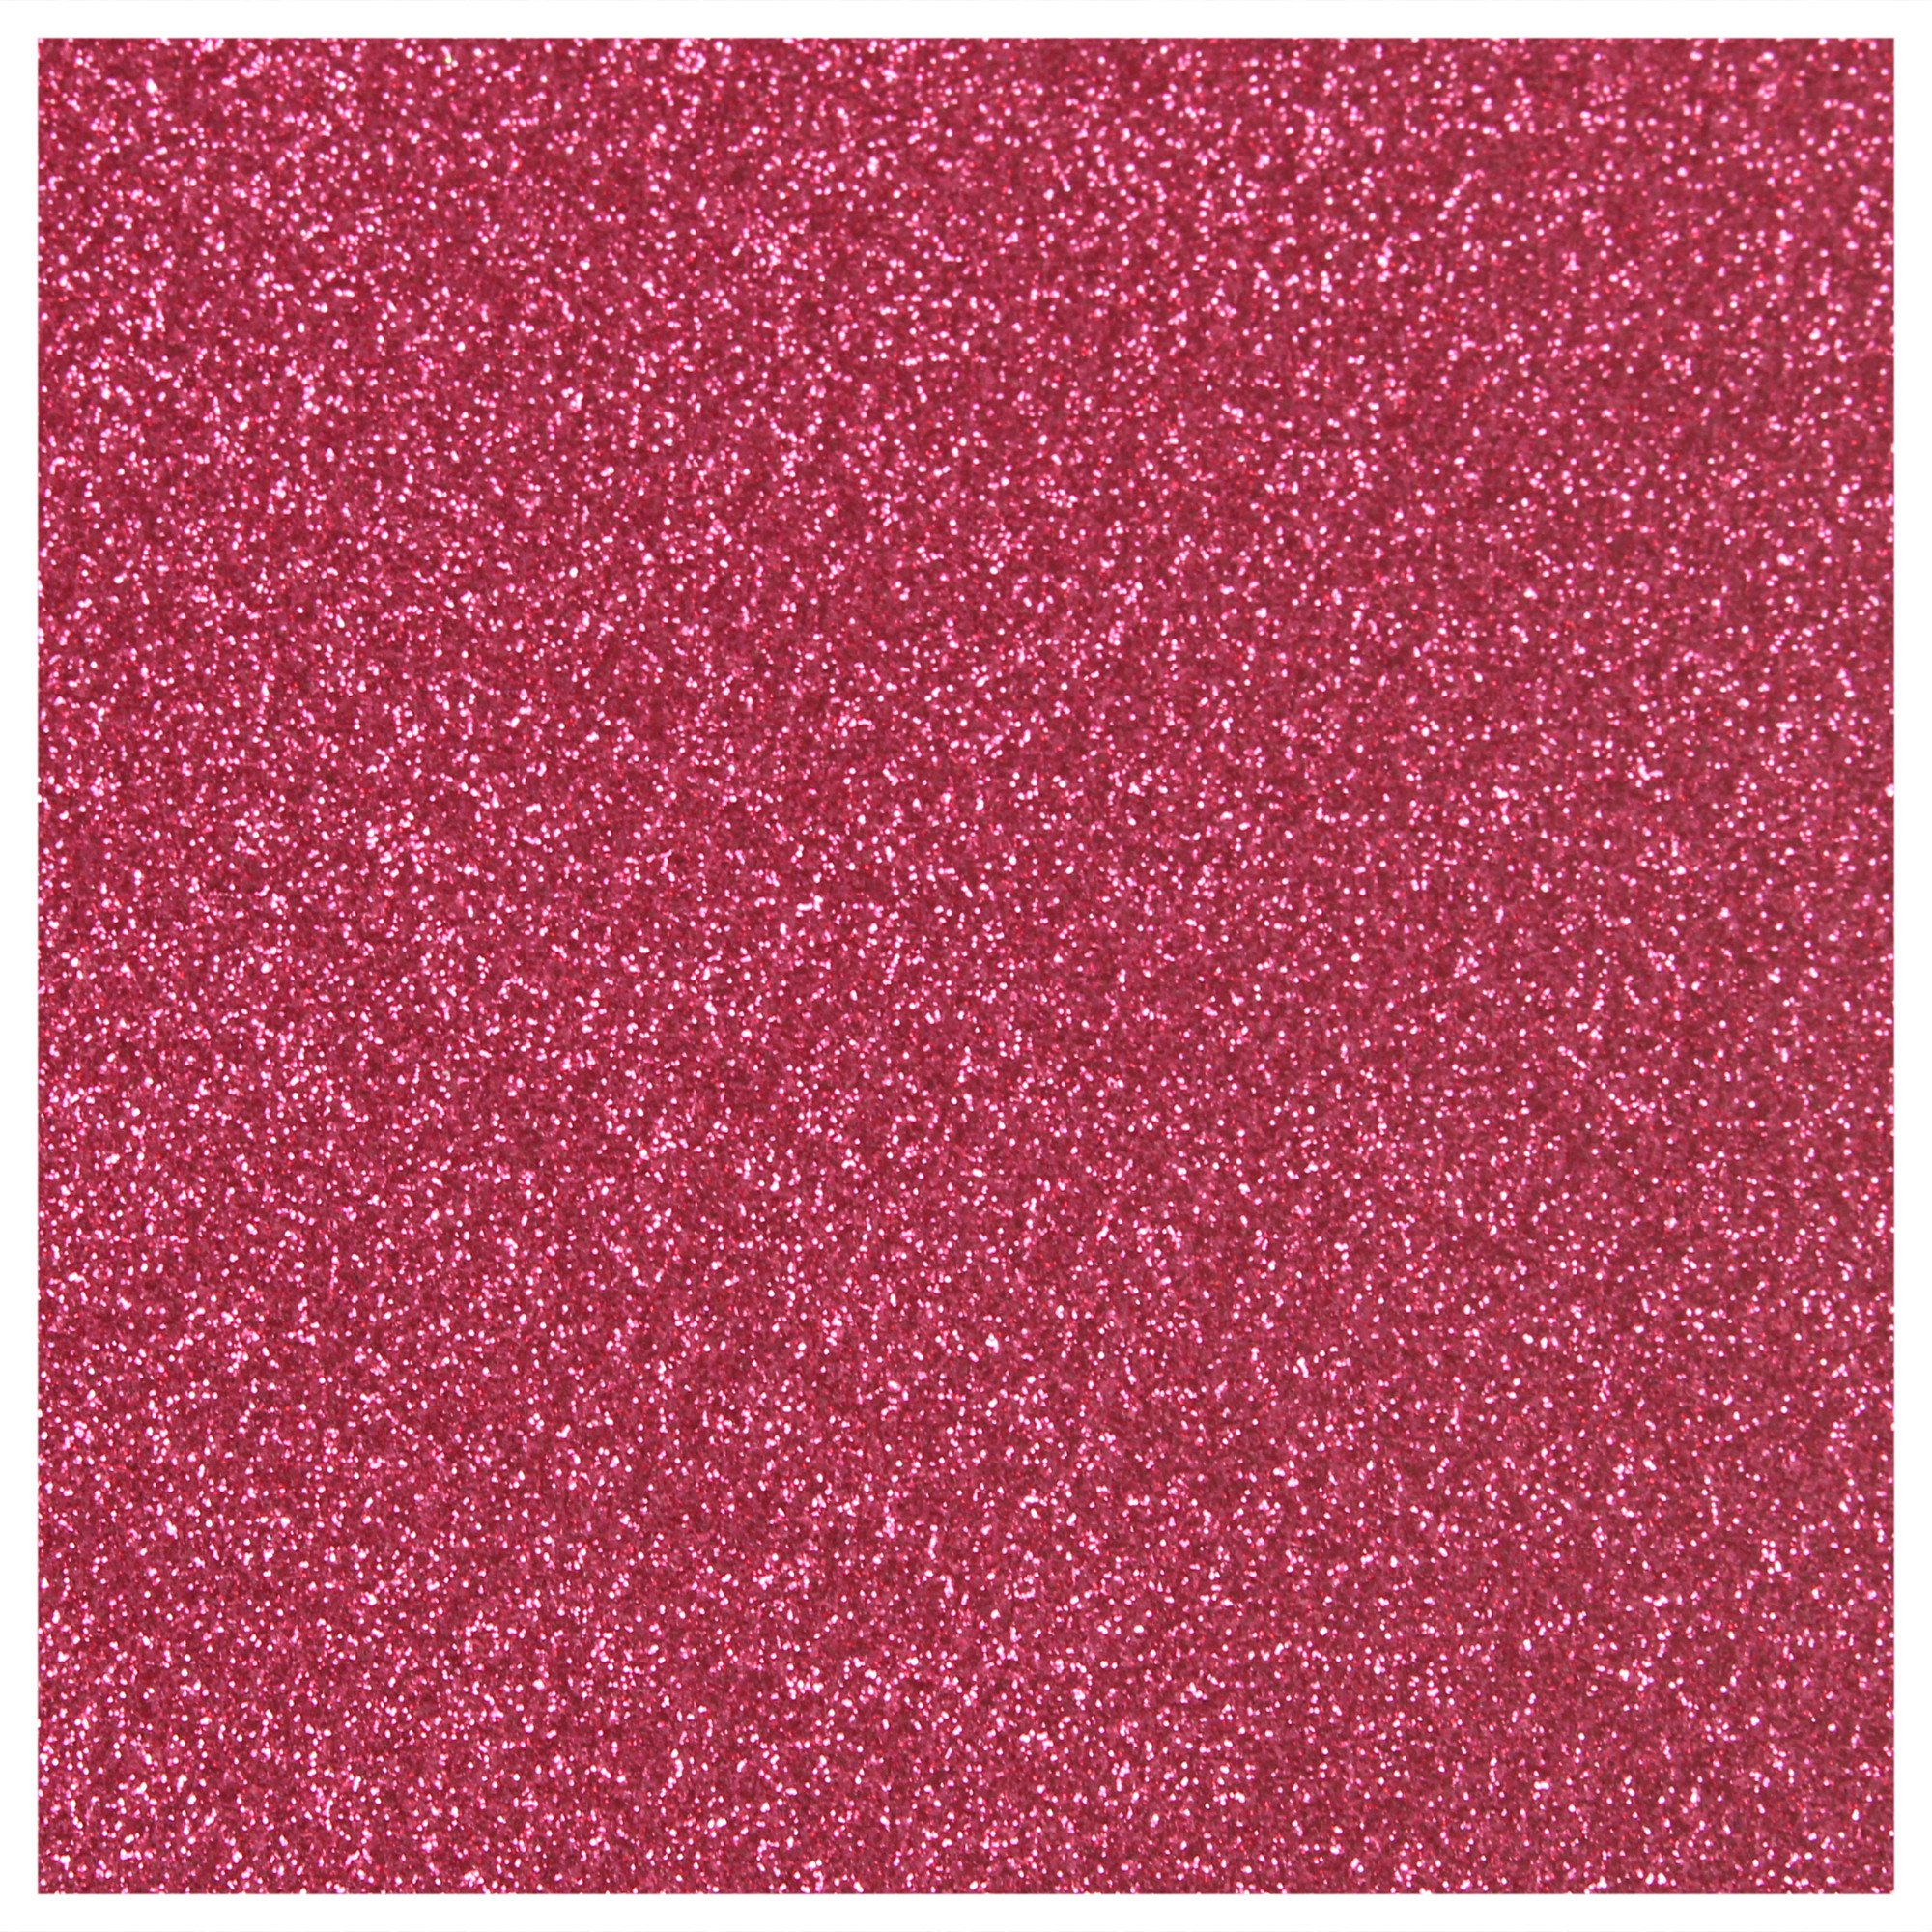 Siser Glitter Heat Transfer Material 20 in x 3 ft Roll - 45 Colors Available